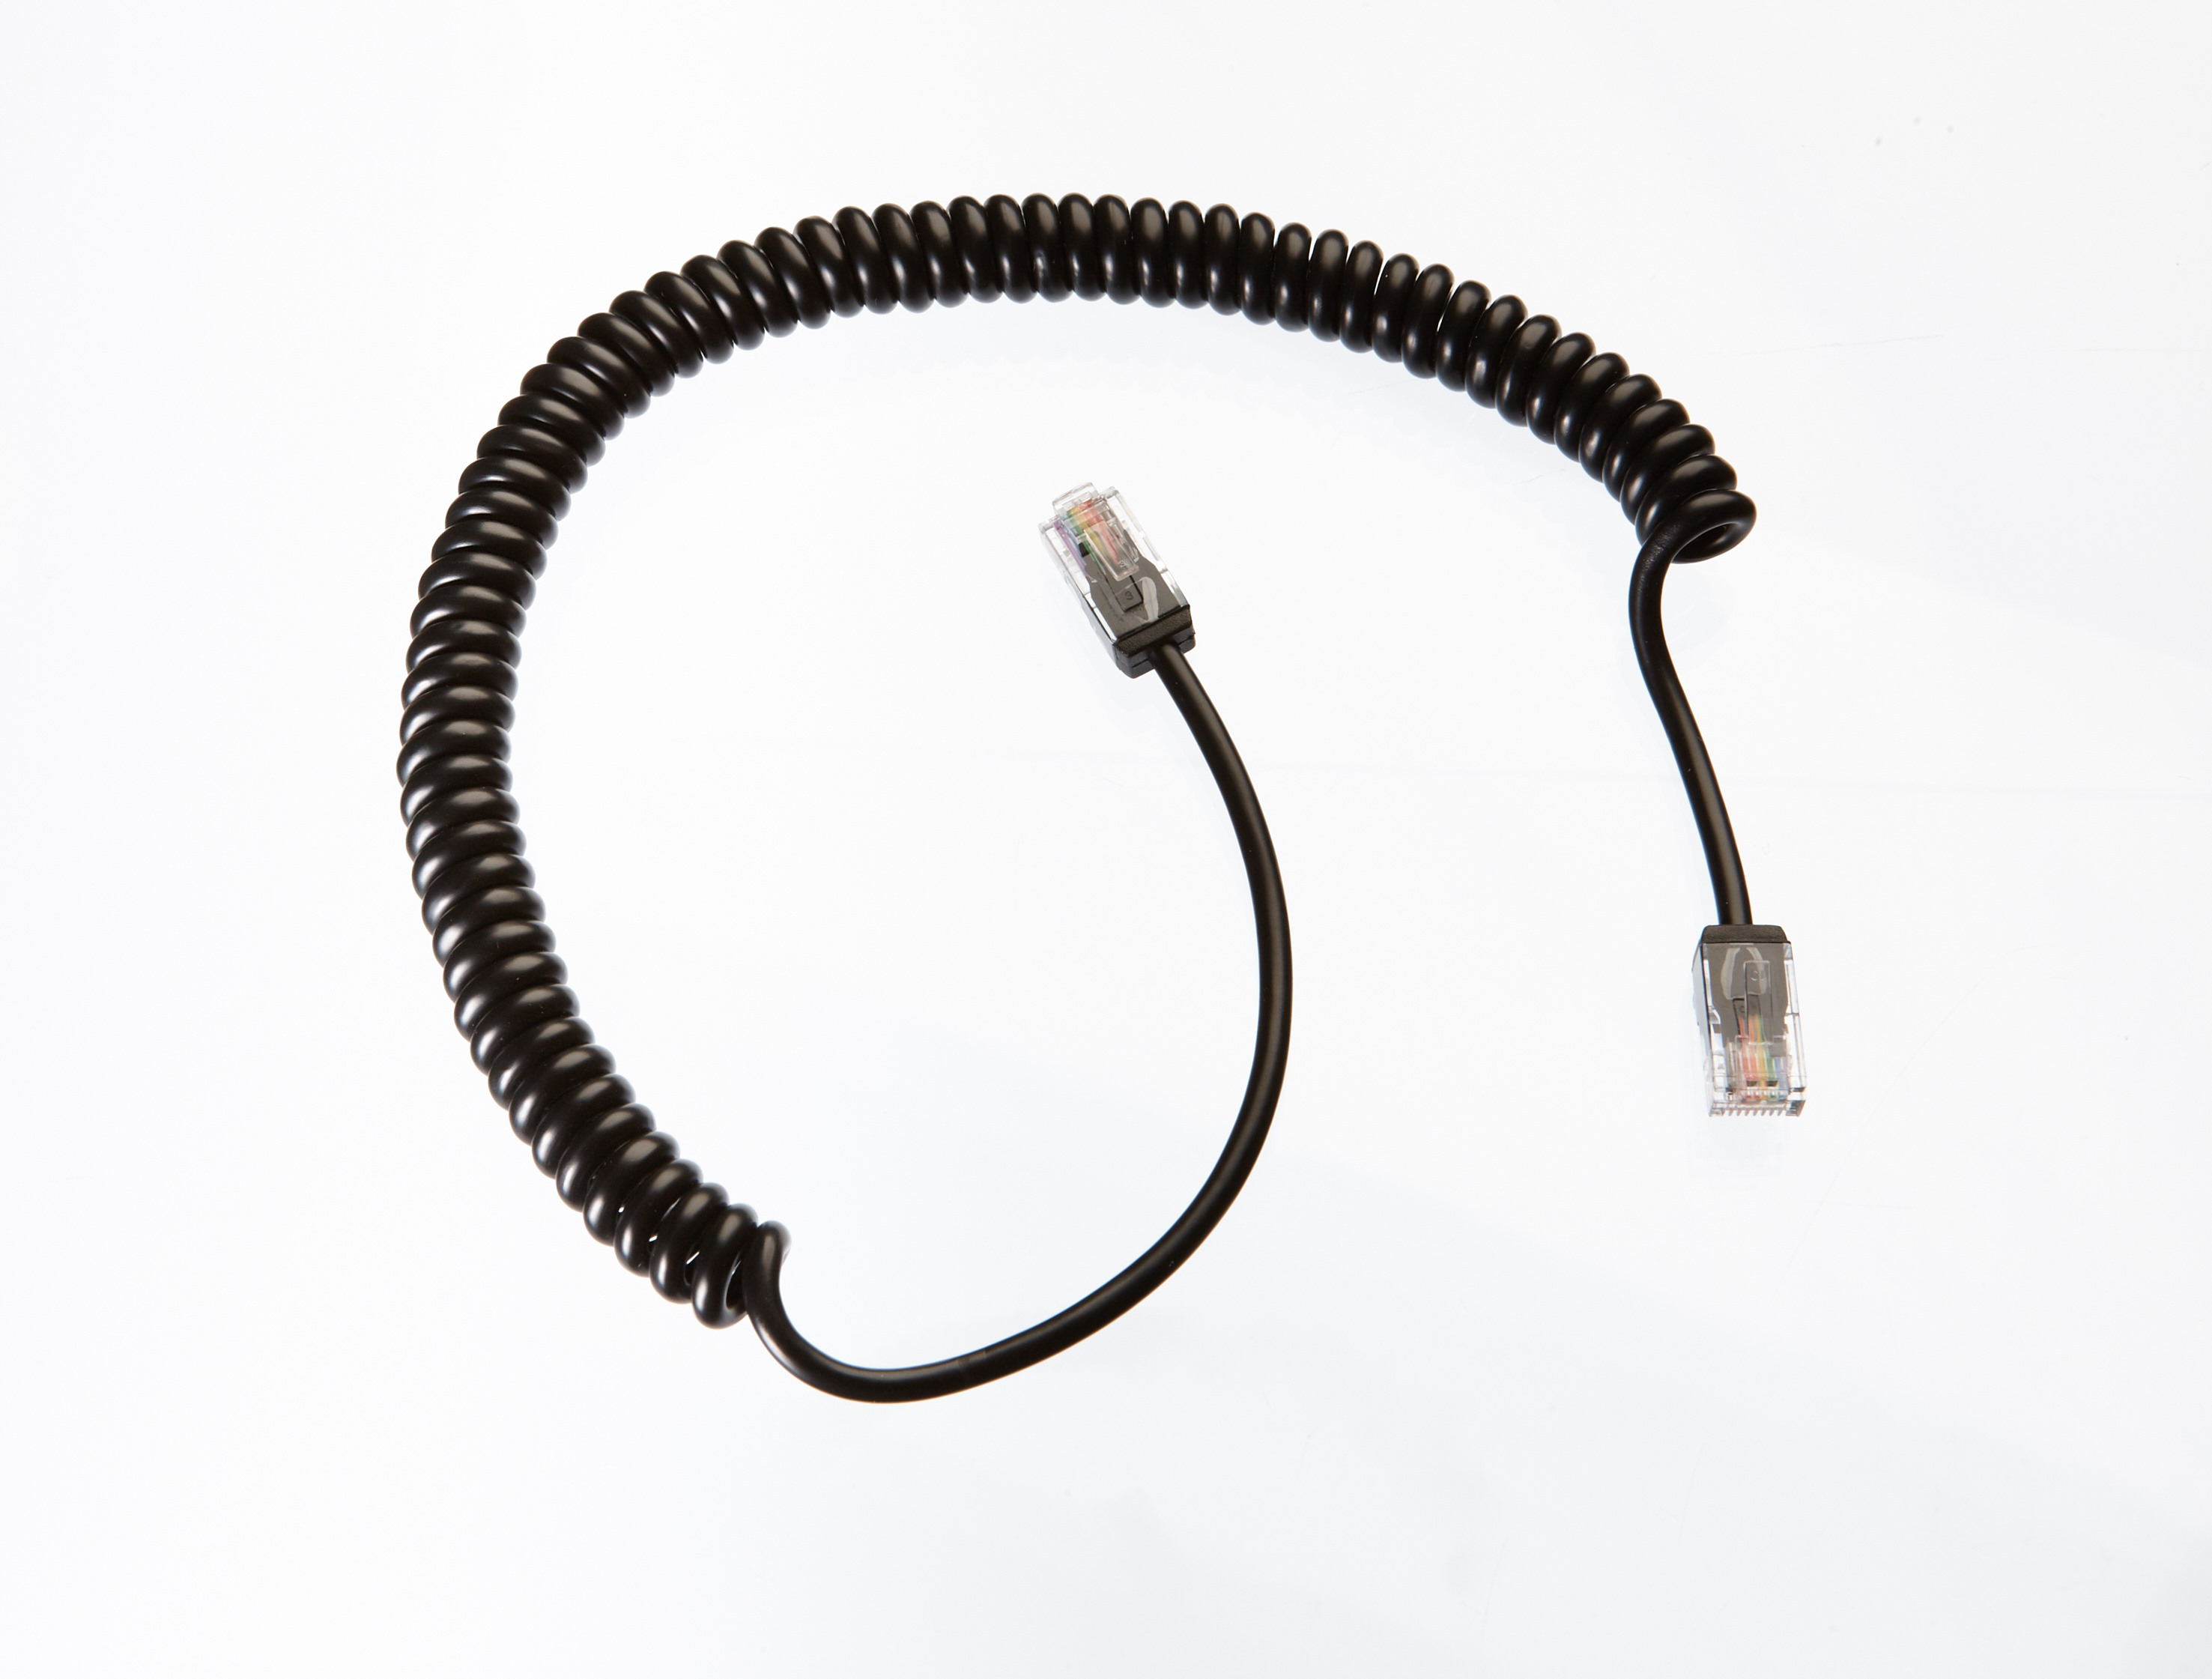 Custom Overmolded Cable Assembly